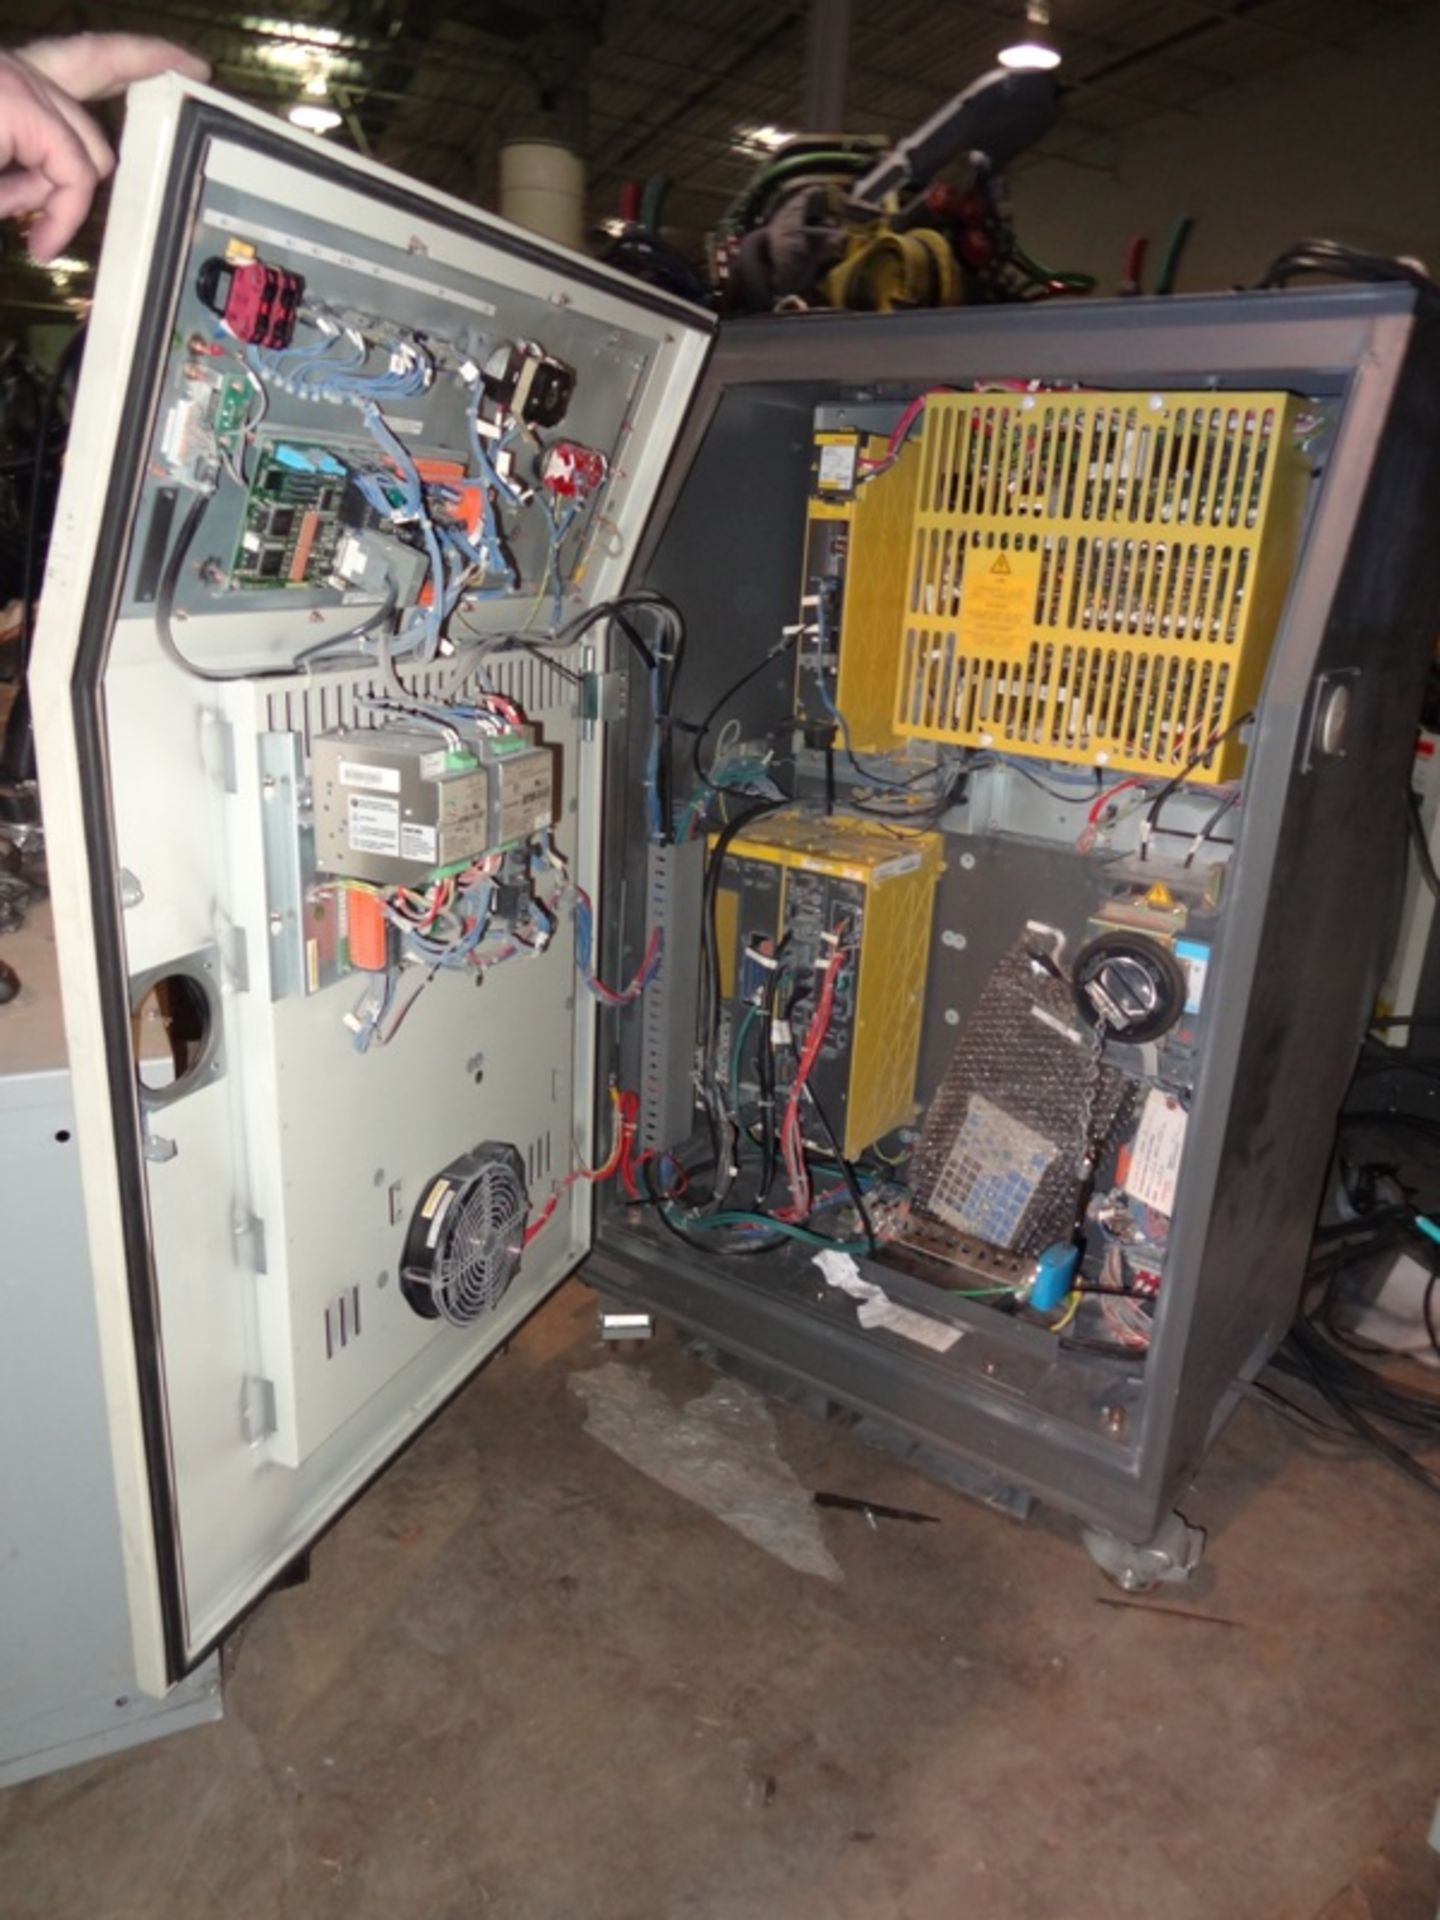 Lot 66 - FANUC ROBOT ARCMATE 120iC/10L WITH R-30iA CONTROL, TEACH & CABLES, YEAR 2011, SN 112258